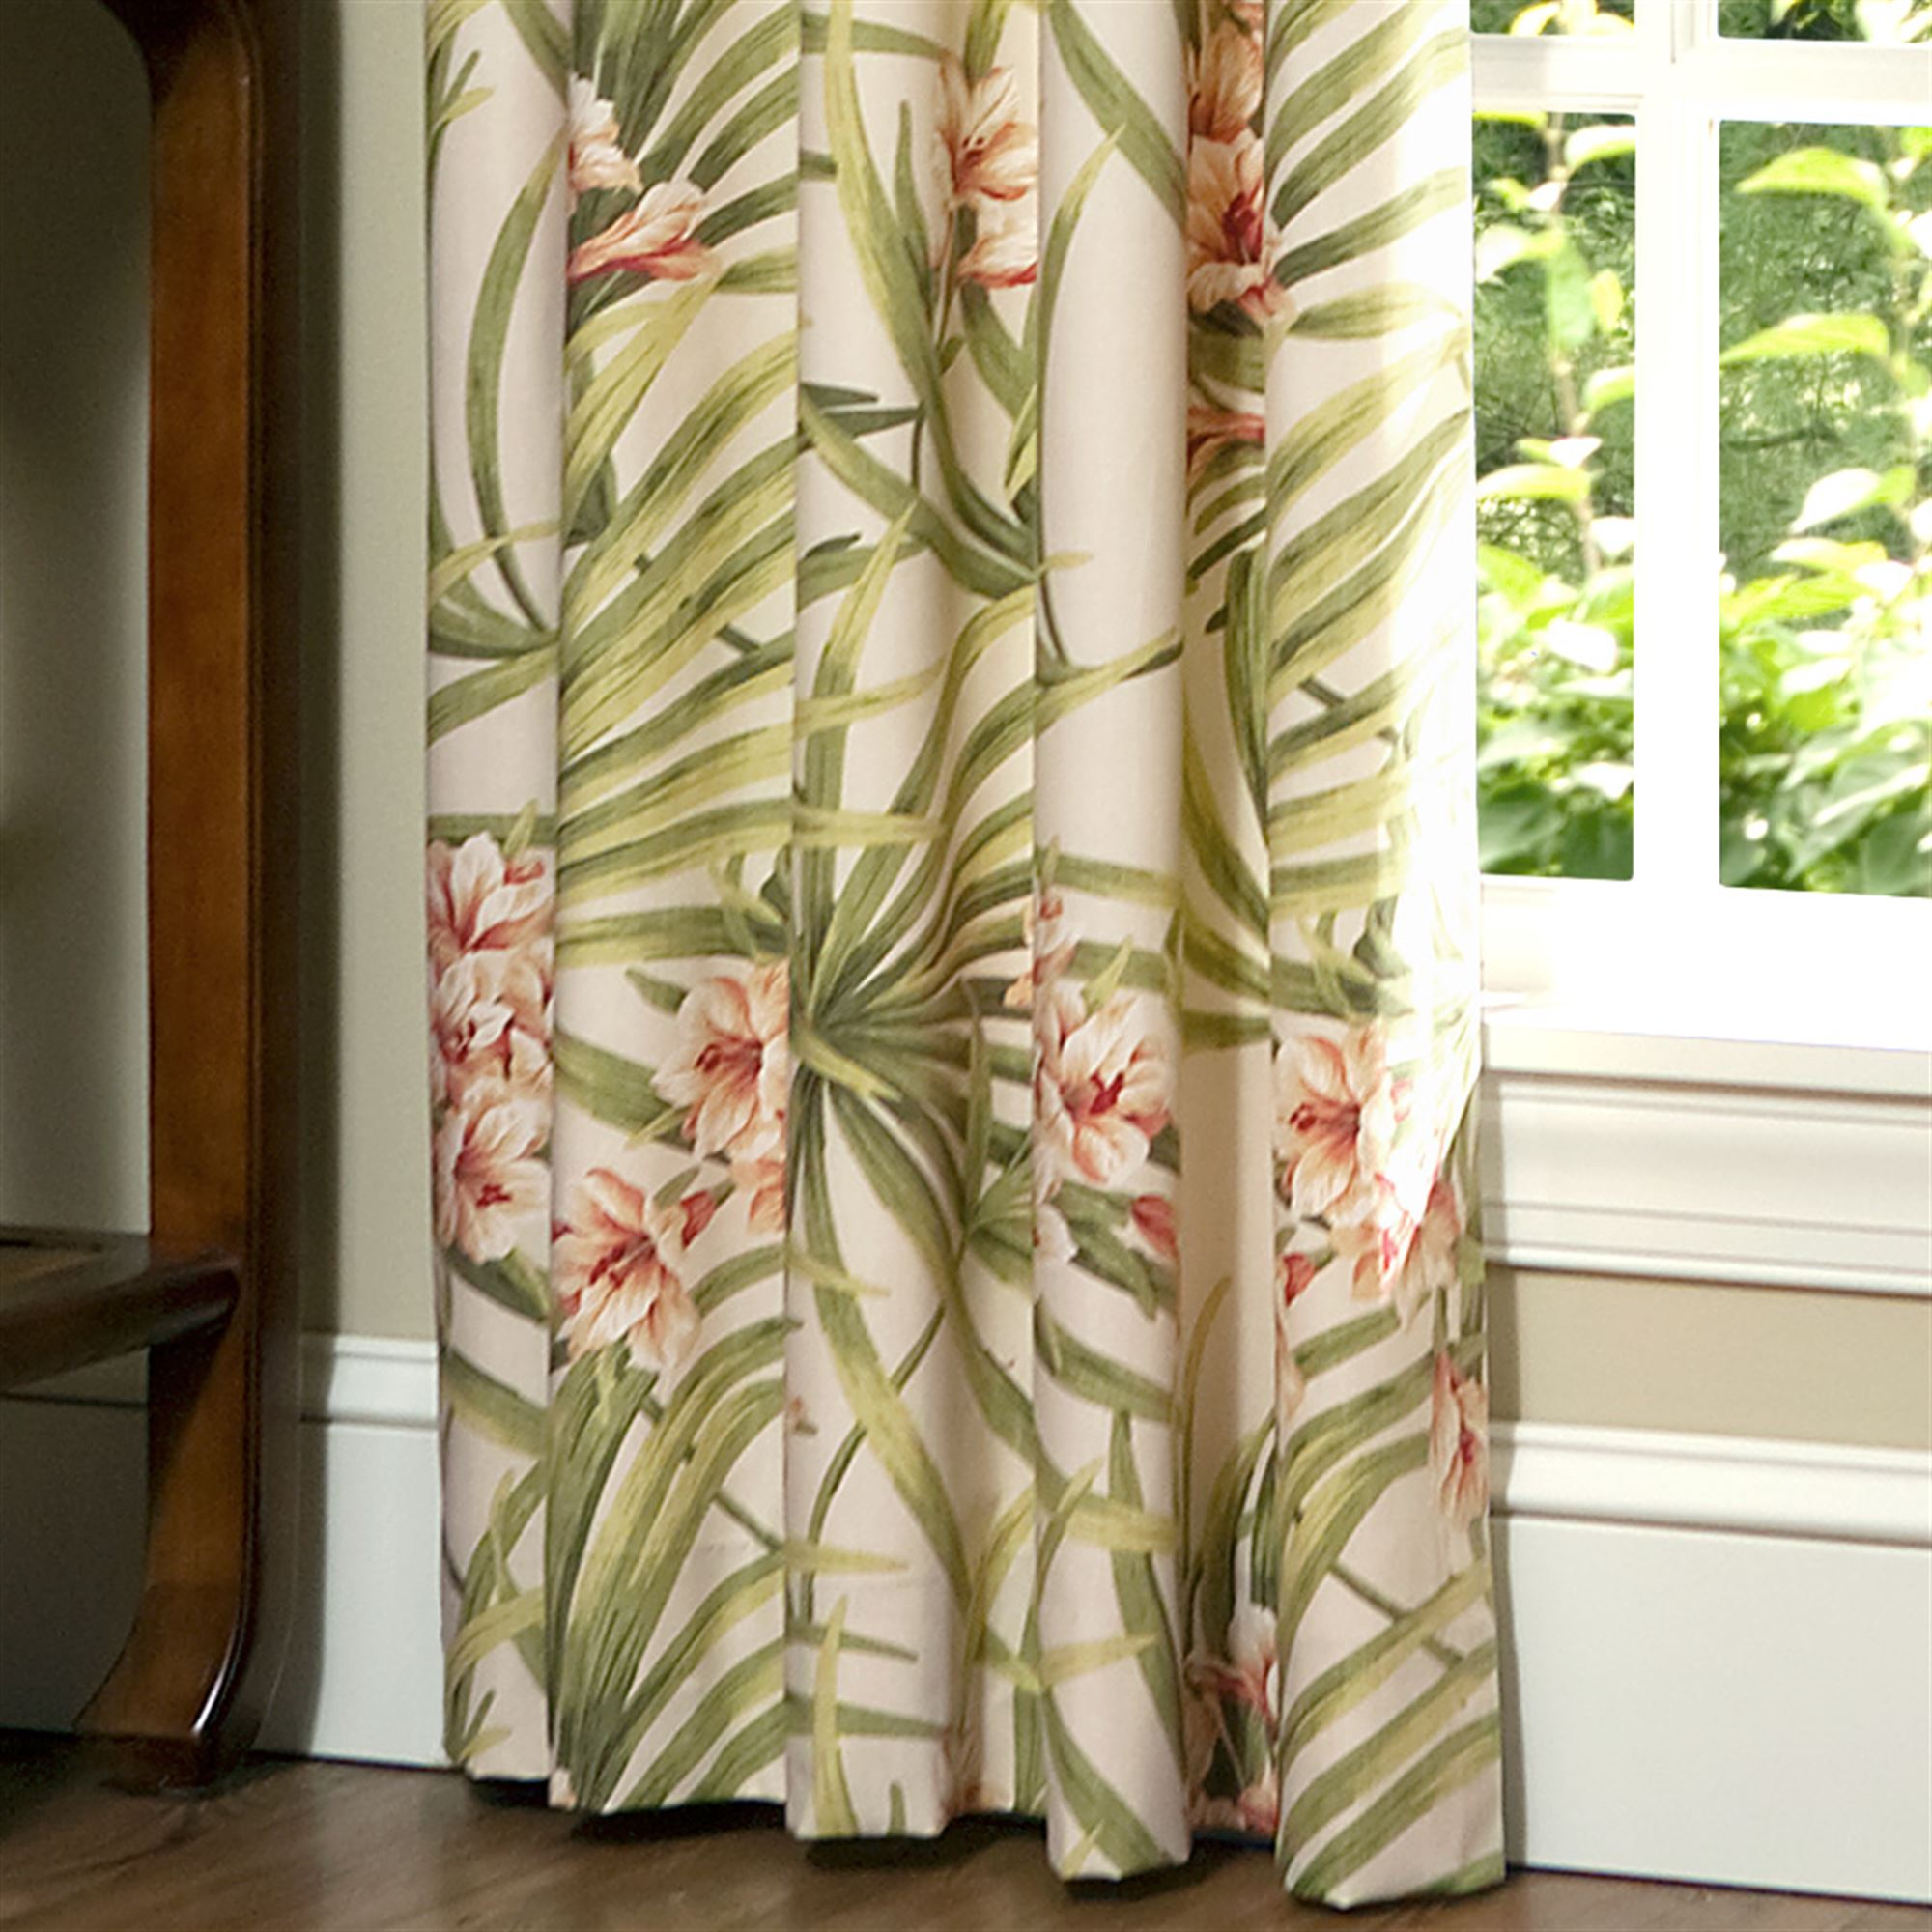 geish palm colour my monro s in trees jean home parrots part tropical geisha carnival fabric curtains of curtain